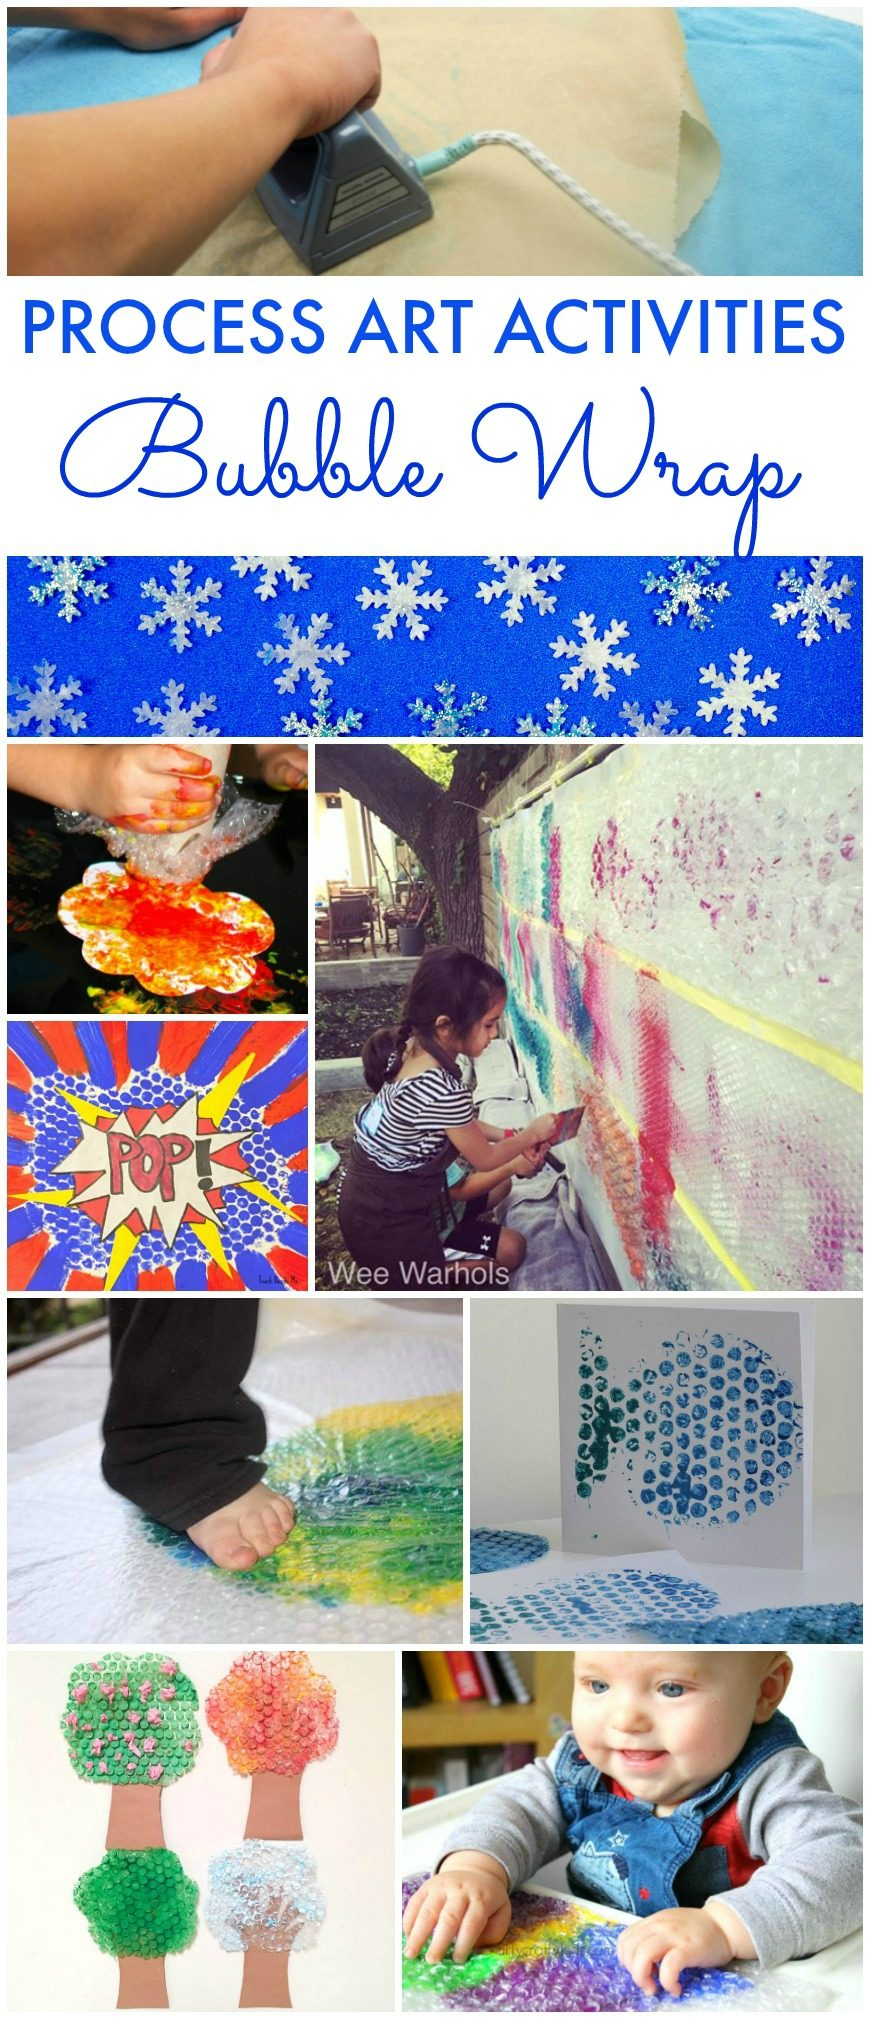 bubble-wrap-process-art-activities-pinterest